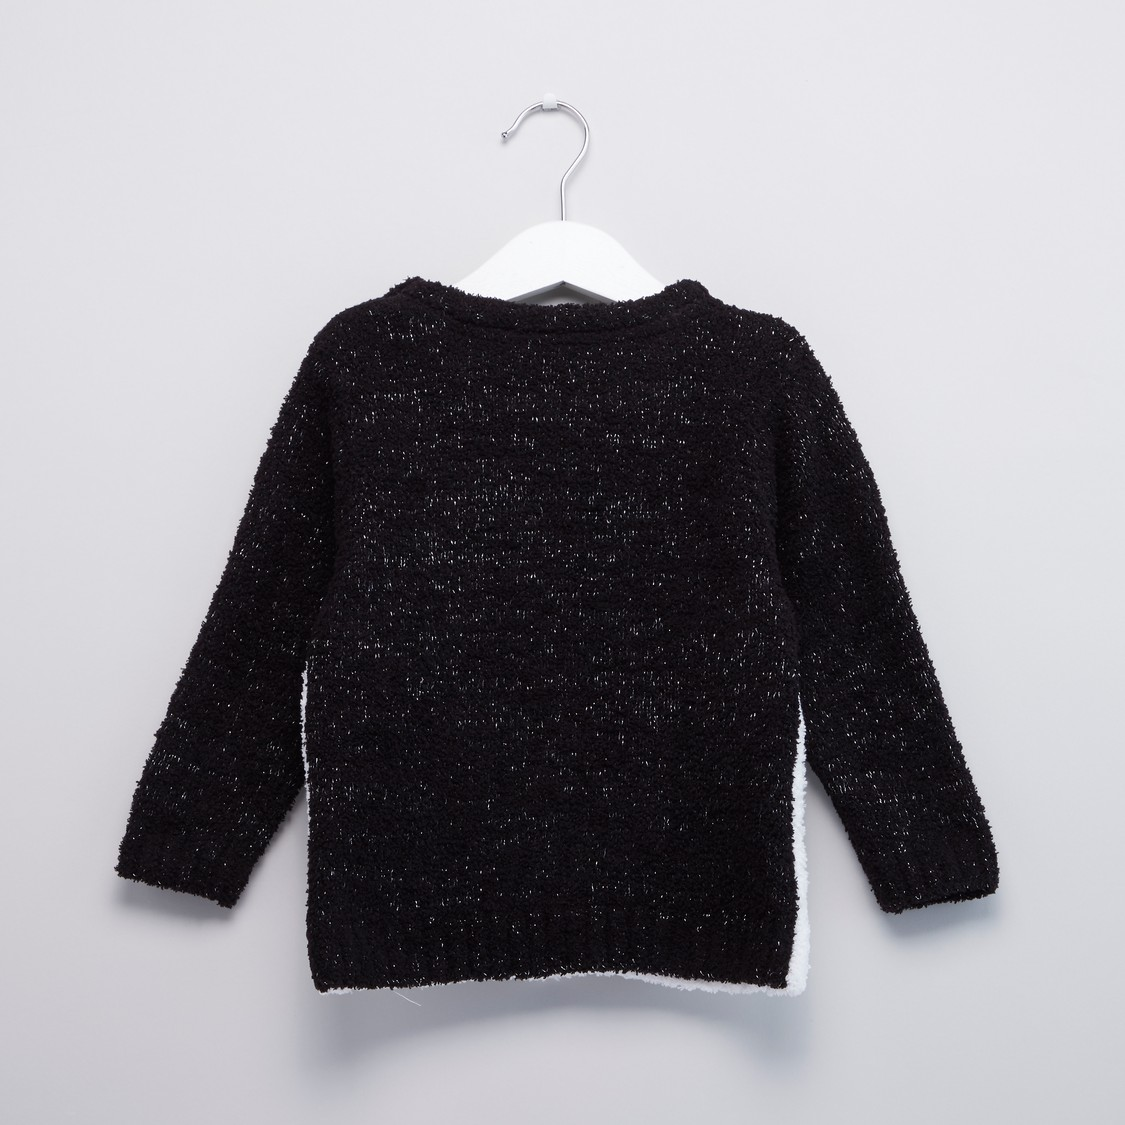 Penguin Face Round Neck Sweater with Long Sleeves